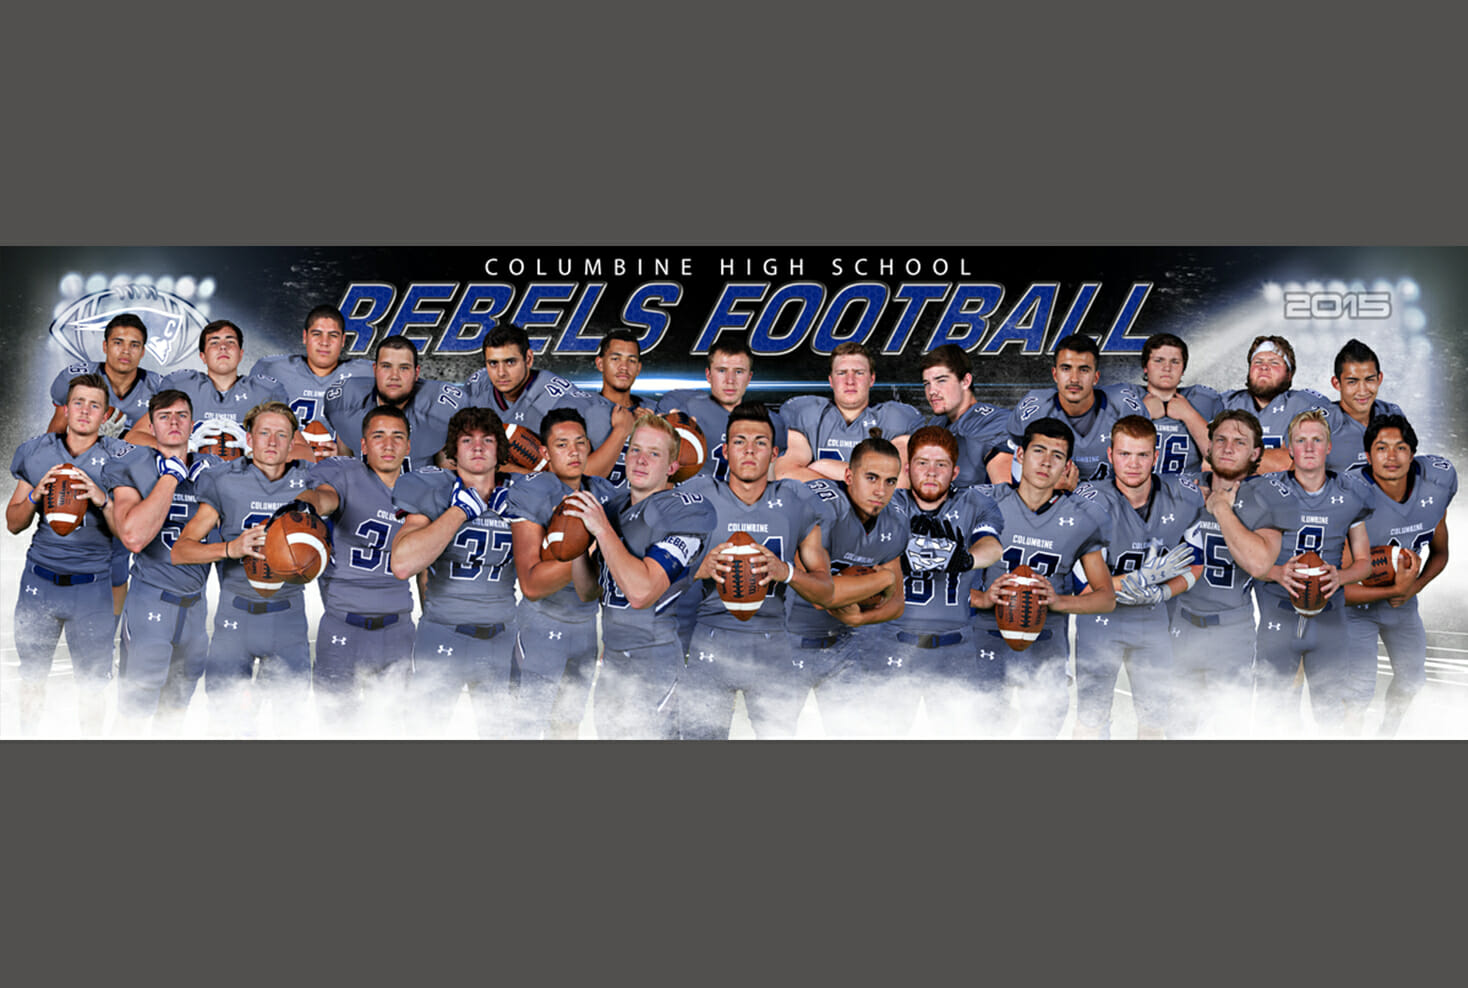 Columbine High School football senior banner